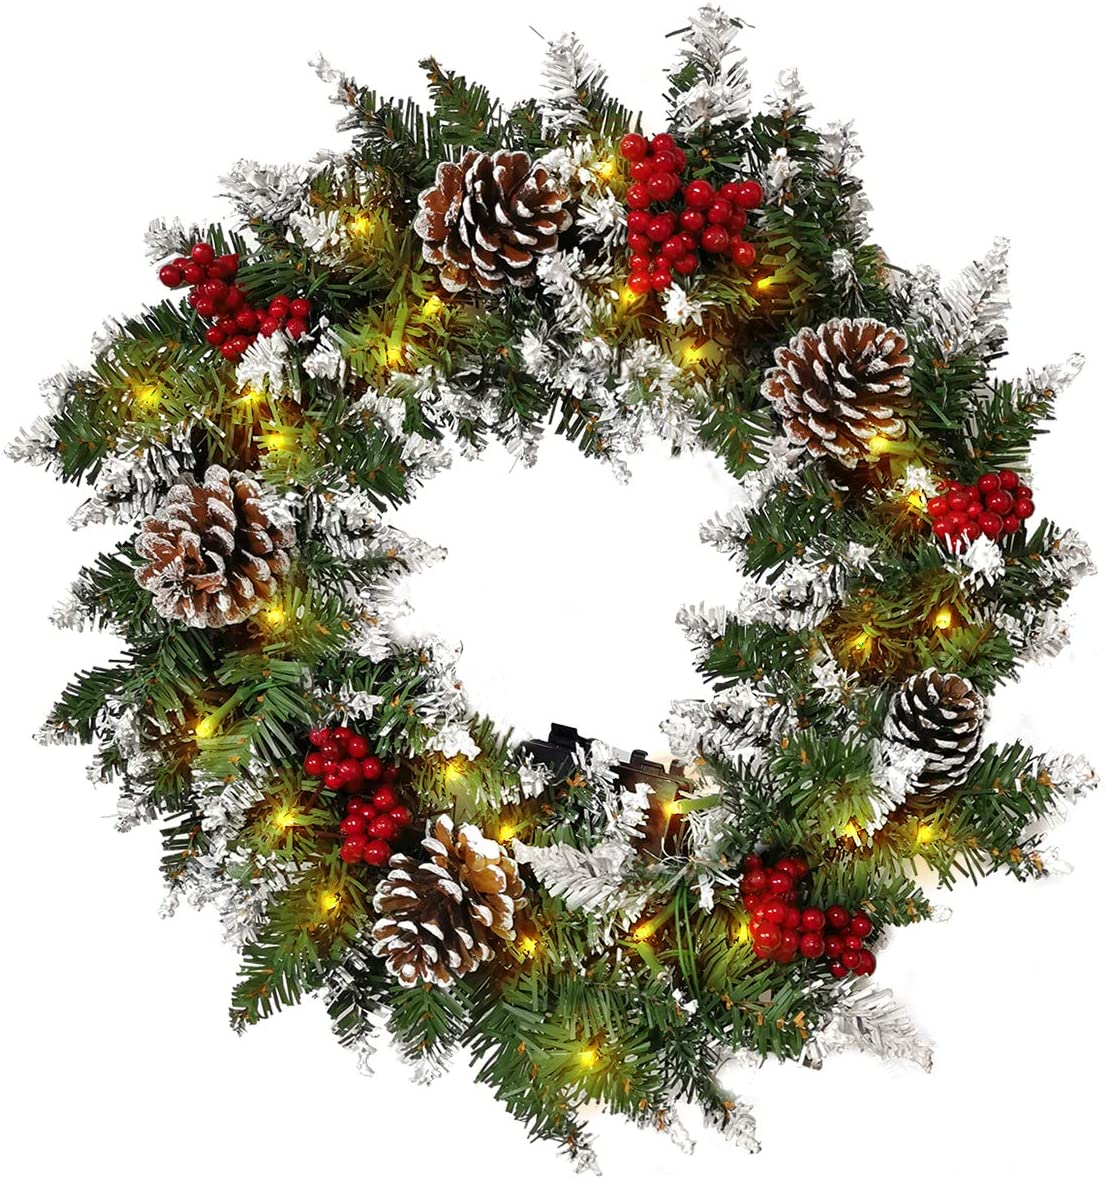 24 Inch Wintry Pine Wreath with Cones, Winter Snowflake Christmas Wreath for Front Door Foyers Shop Windows Fireplaces Walls New Years Decor …